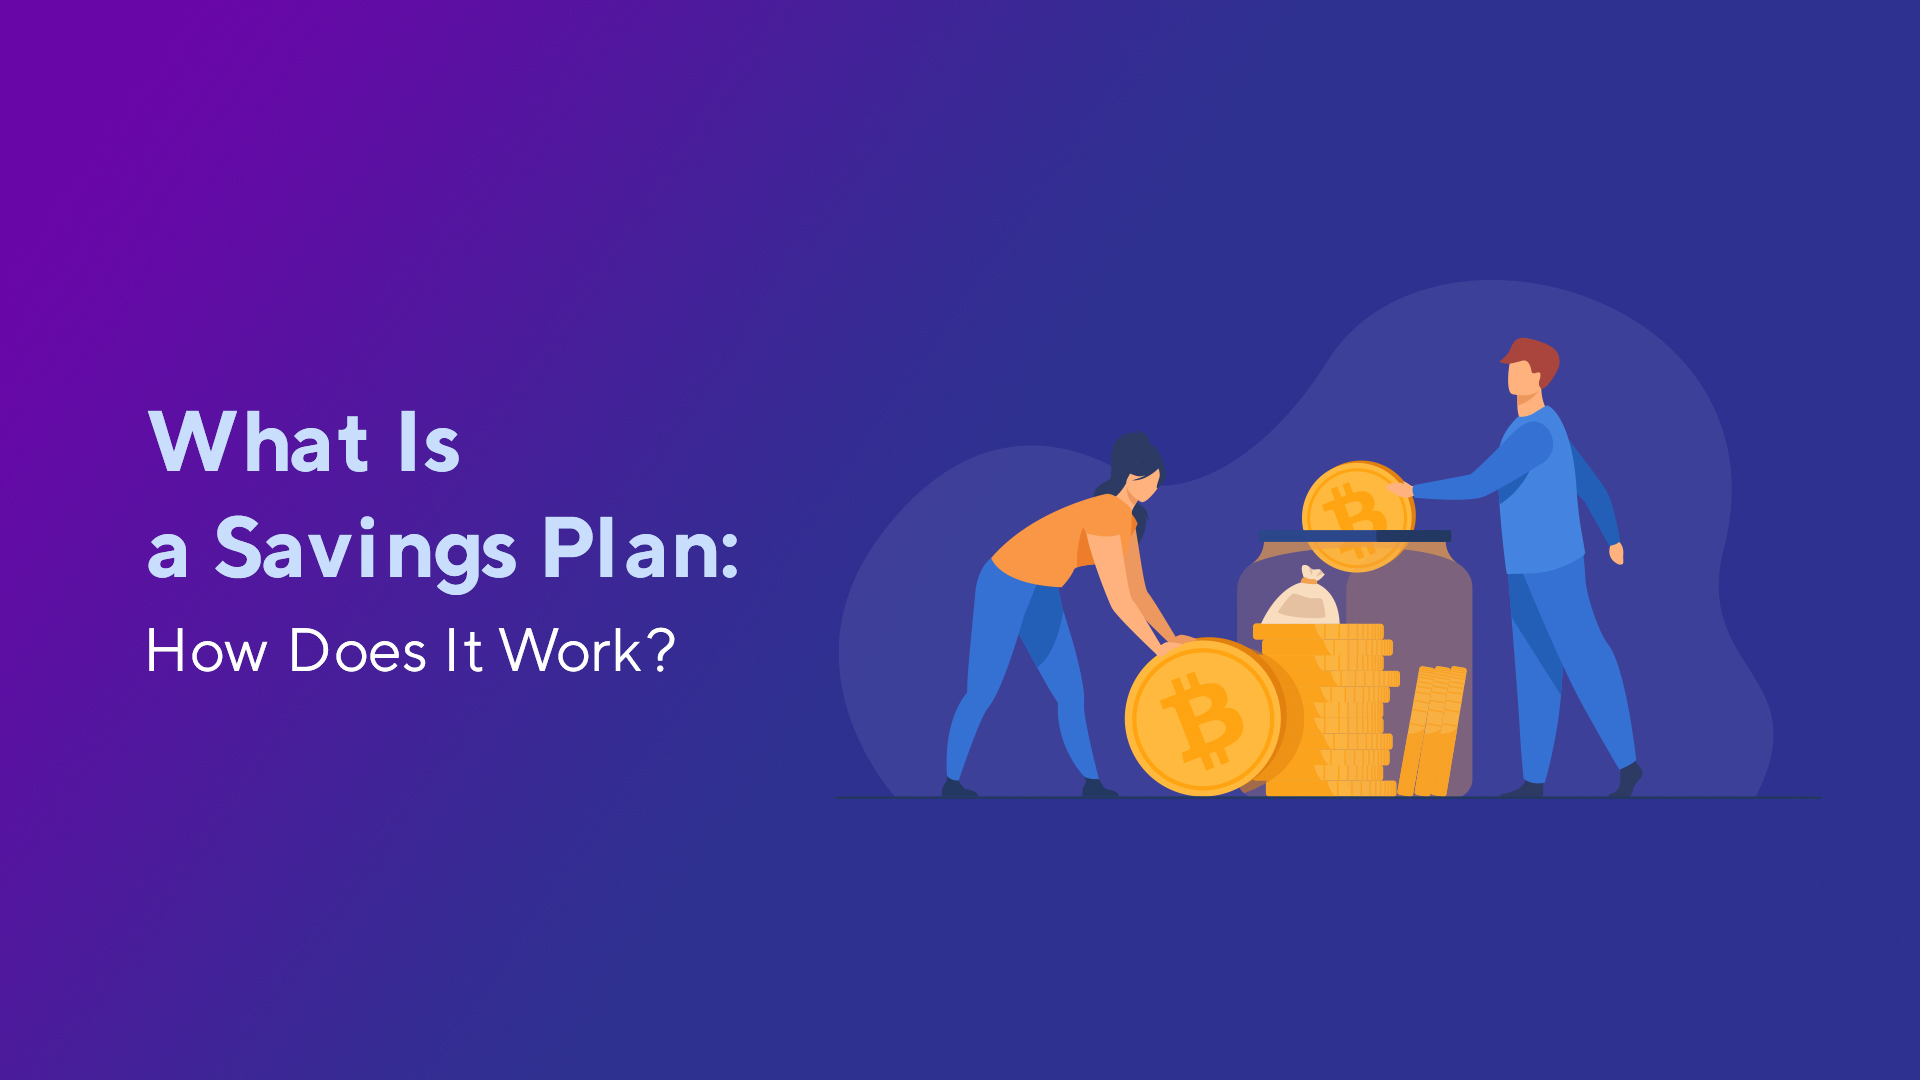 What Is a Savings Plan: How Does It Work?